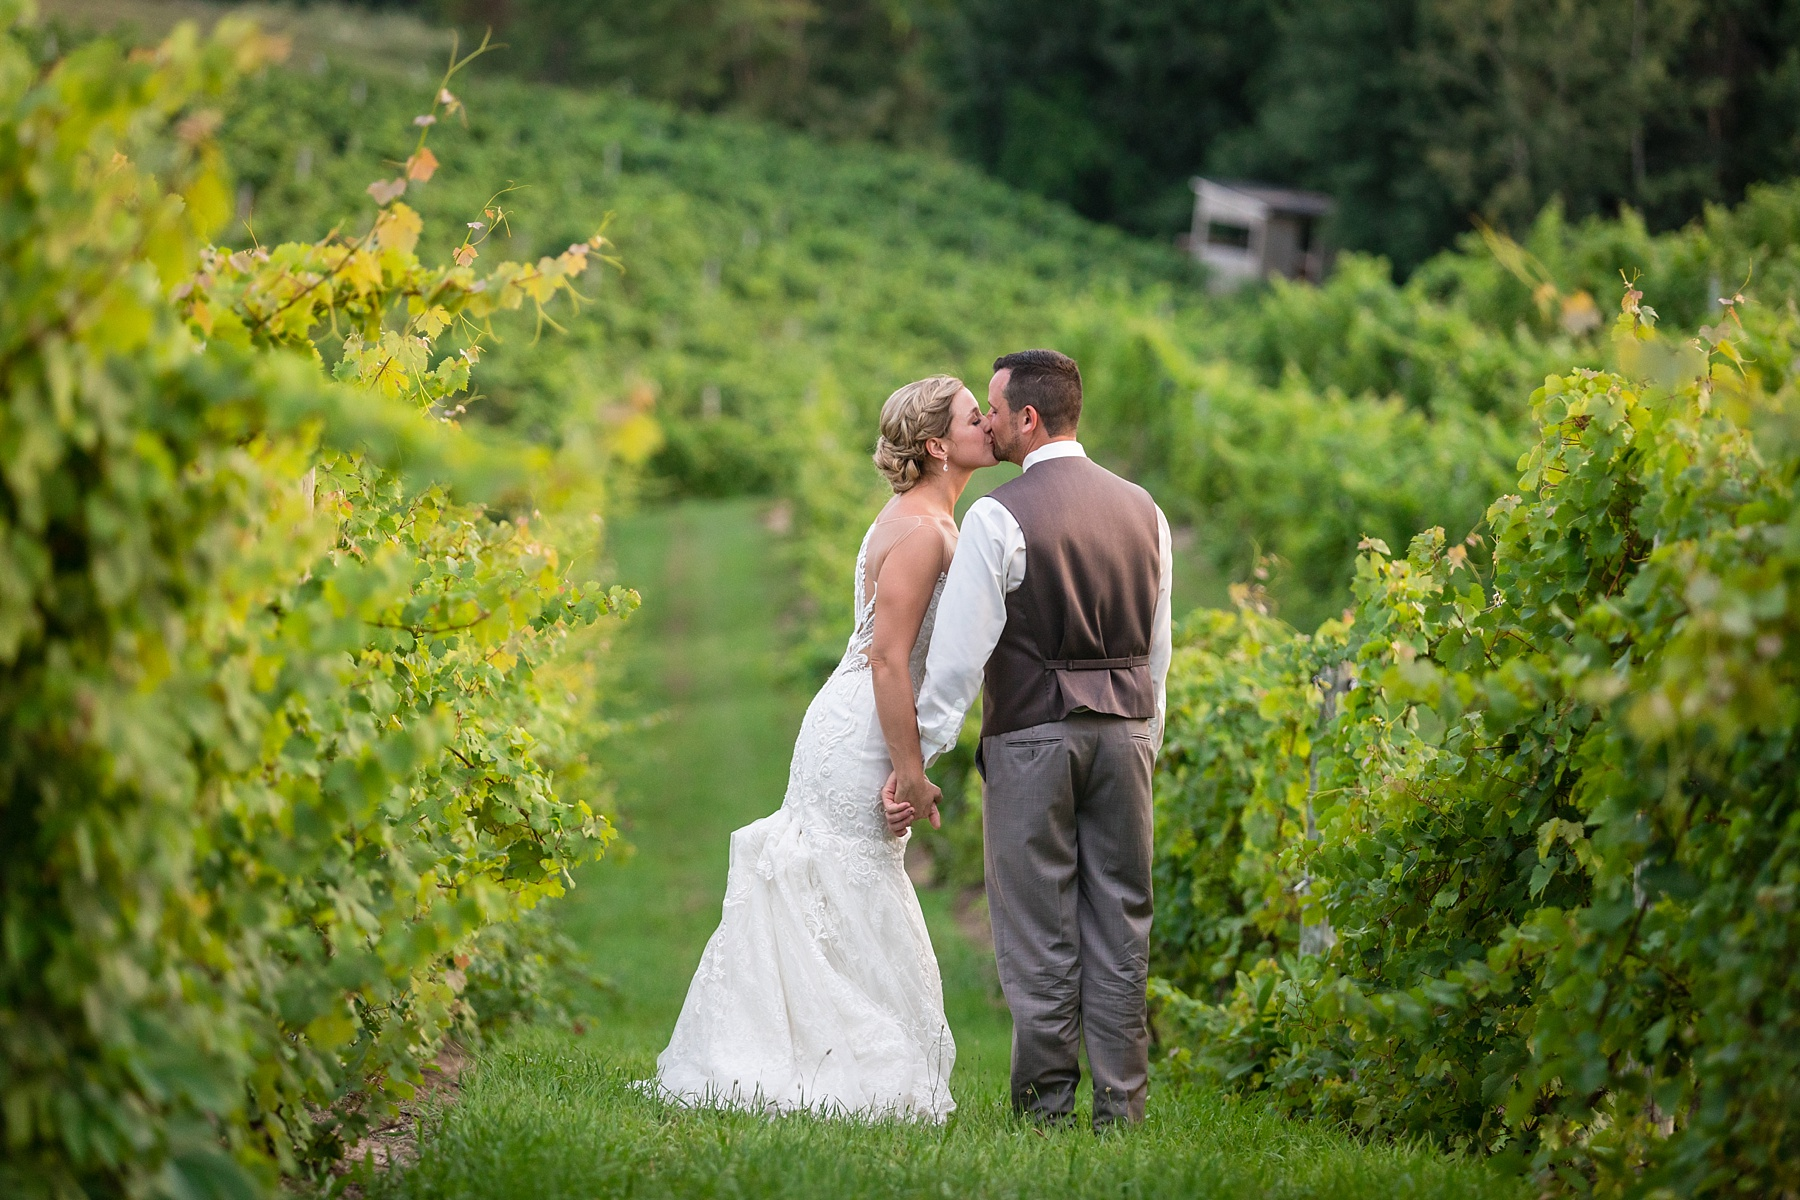 Brandon_Shafer_Photography_Lauren_Vasile_Ciccone_Vineyard_Suttons_Bay_Wedding_0061.jpg